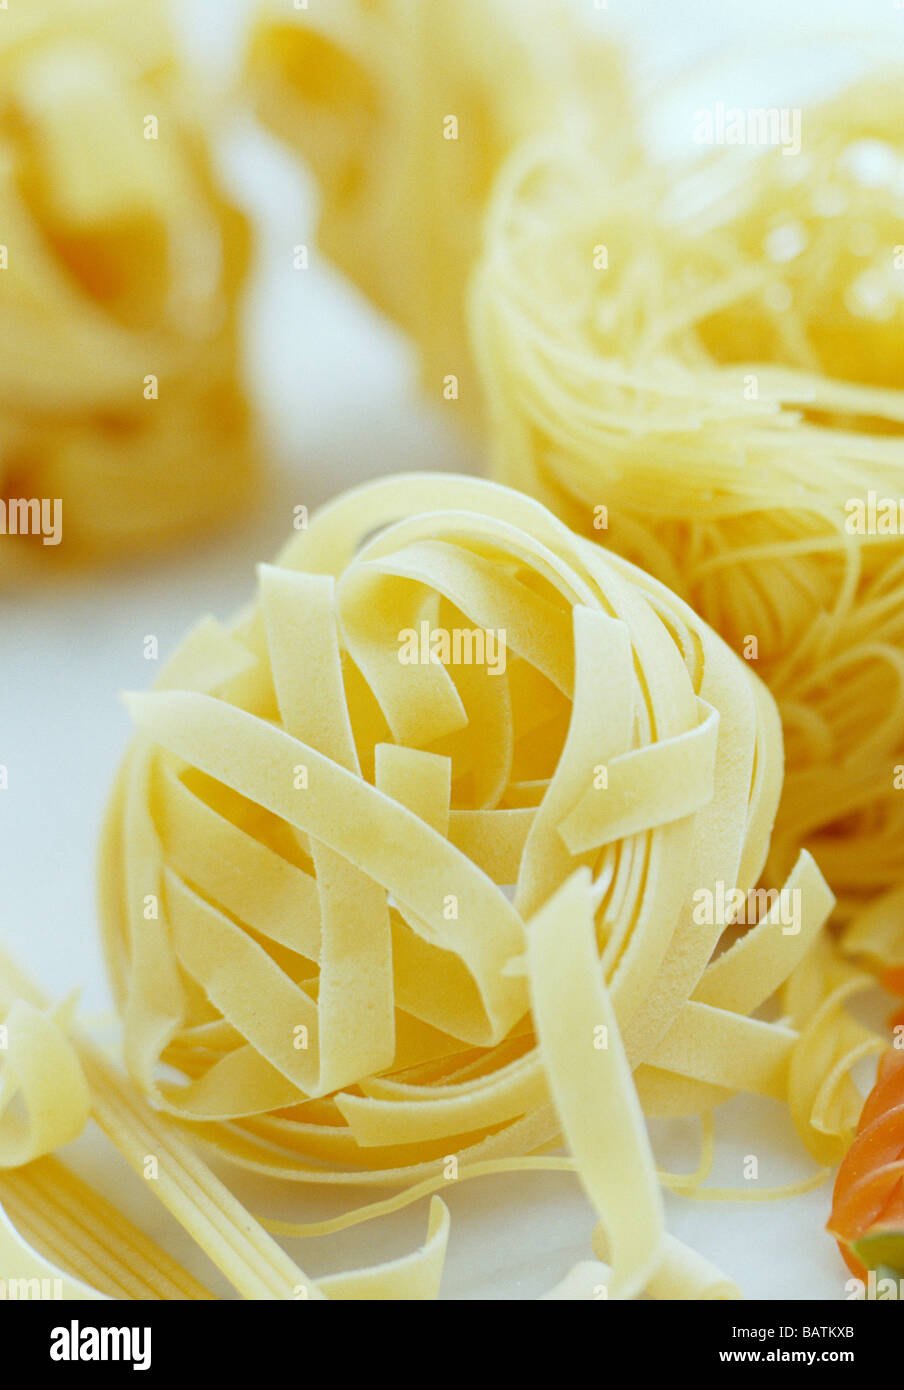 Dried pasta ribbons. Pasta is a flour-based food product, and so it contains lots ofcarbohydrates from the cereal - Stock Image